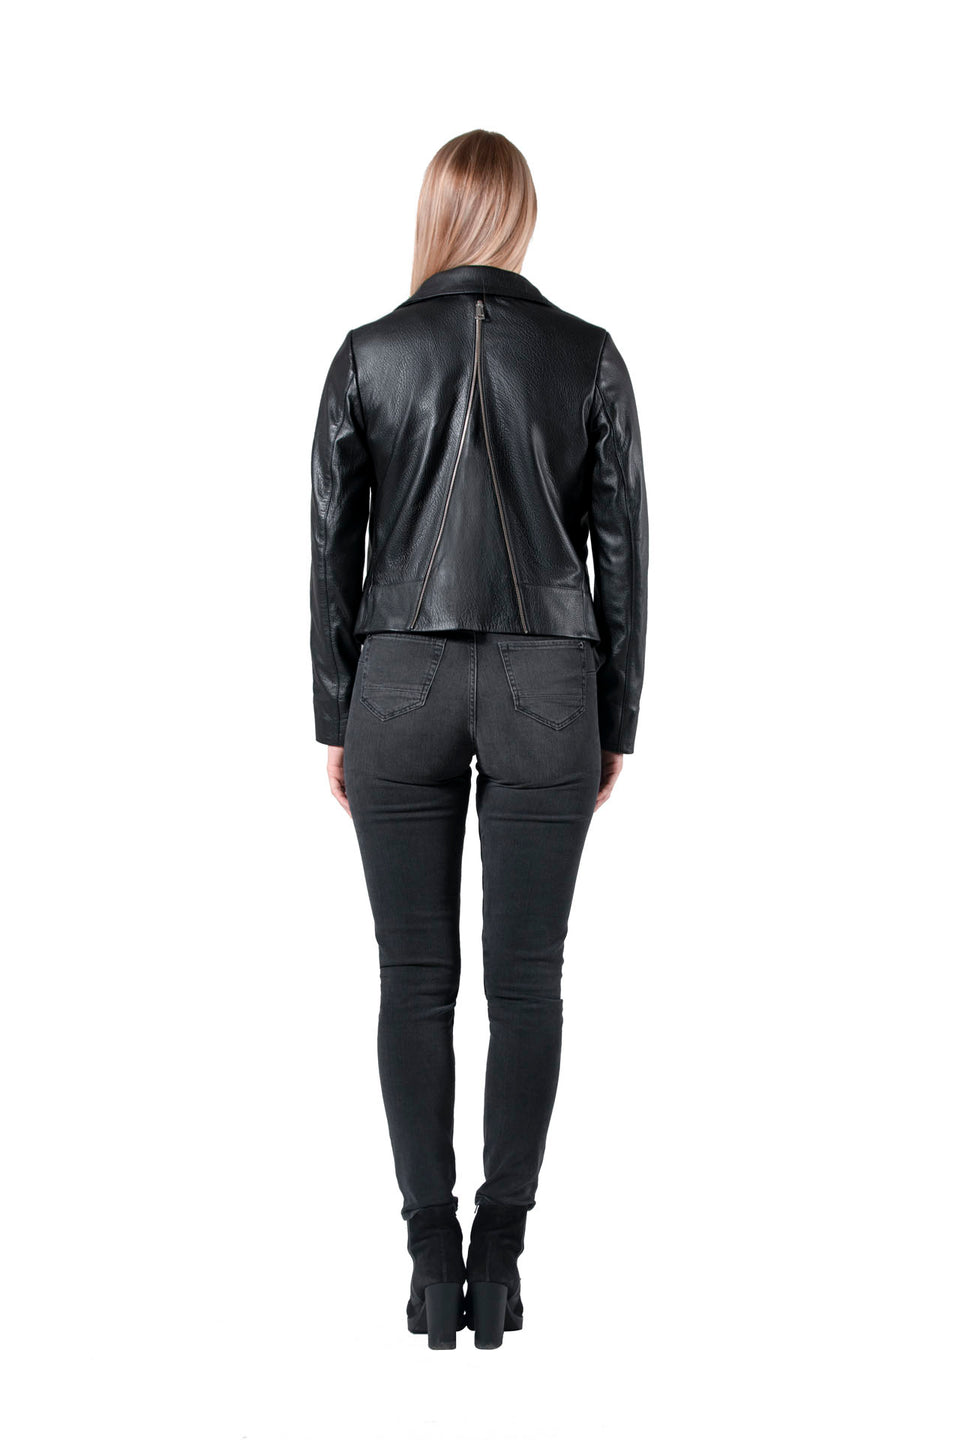 Taylor - Women's Black Genuine Leather Jacket 2020